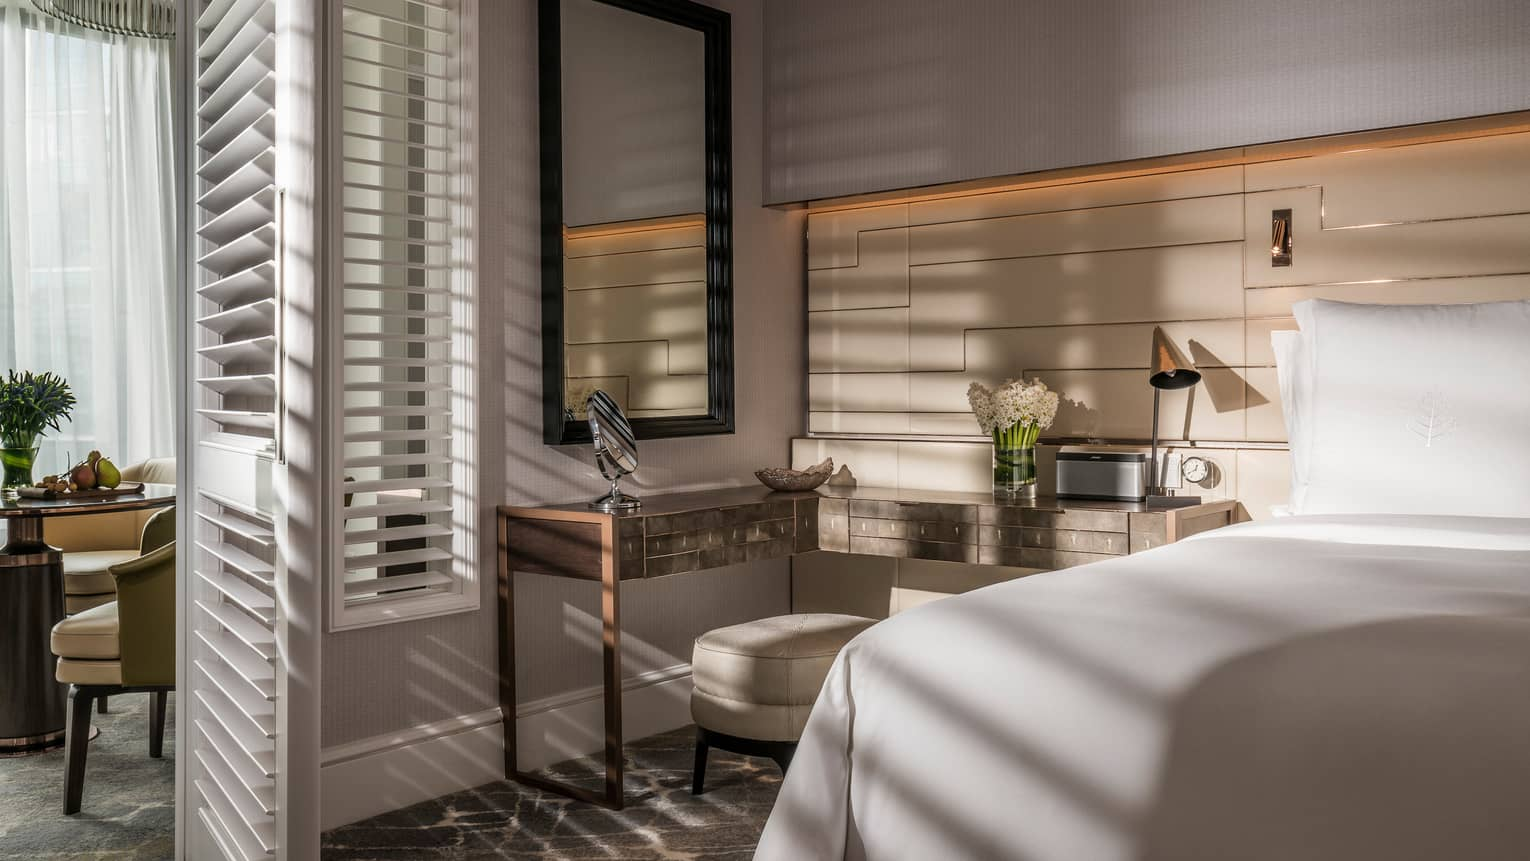 Sun streams into bedroom through tall white California shutters on dining room wall